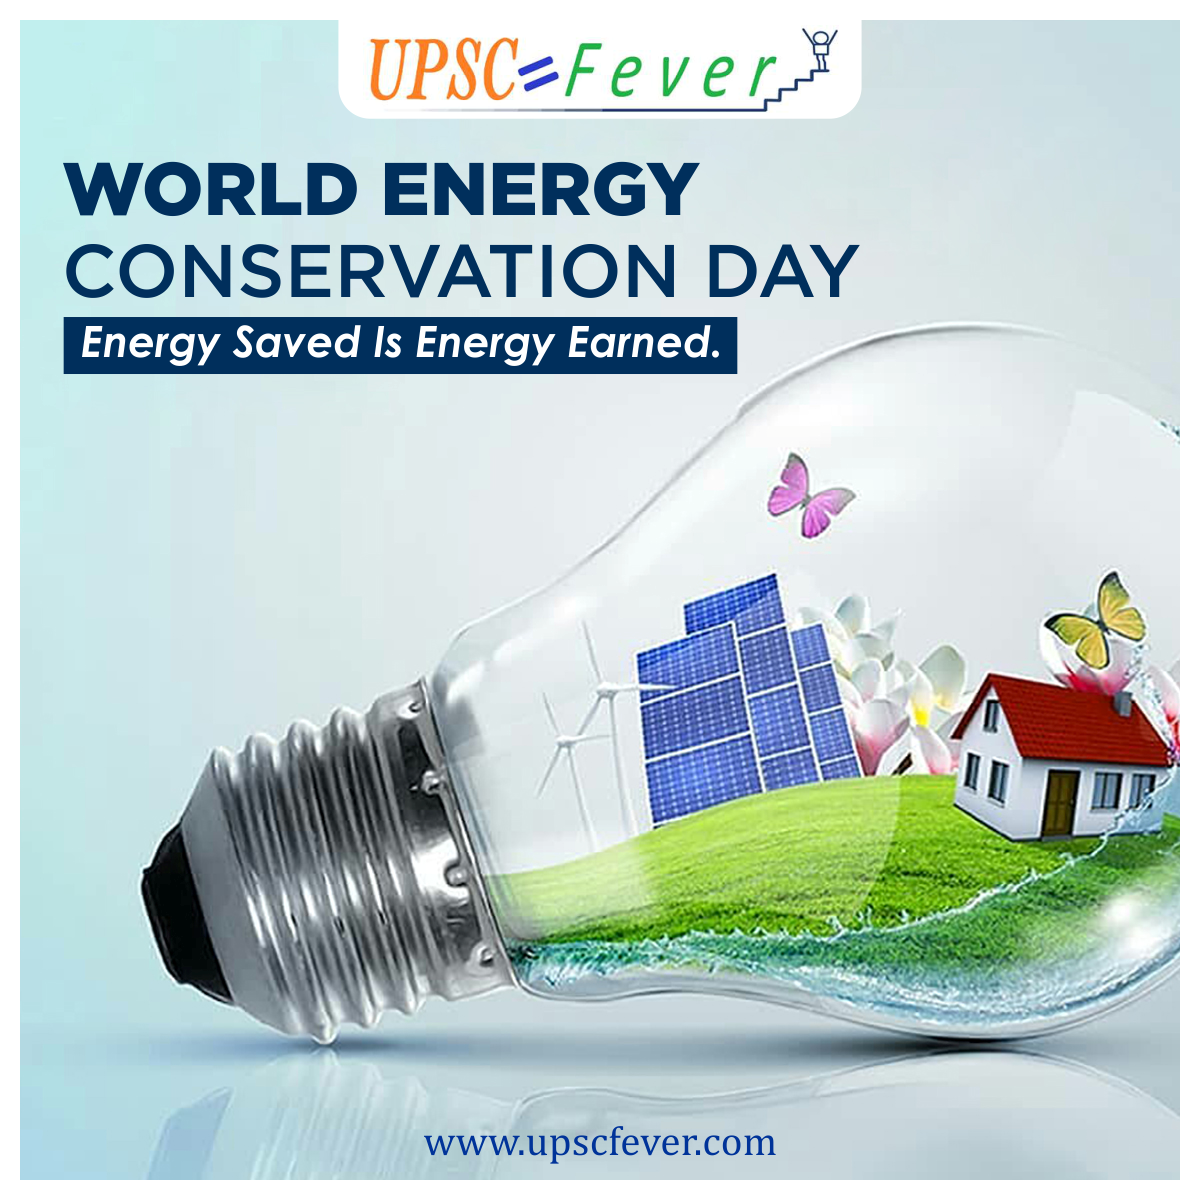 This Energy Conservation Day Let's take a pledge to